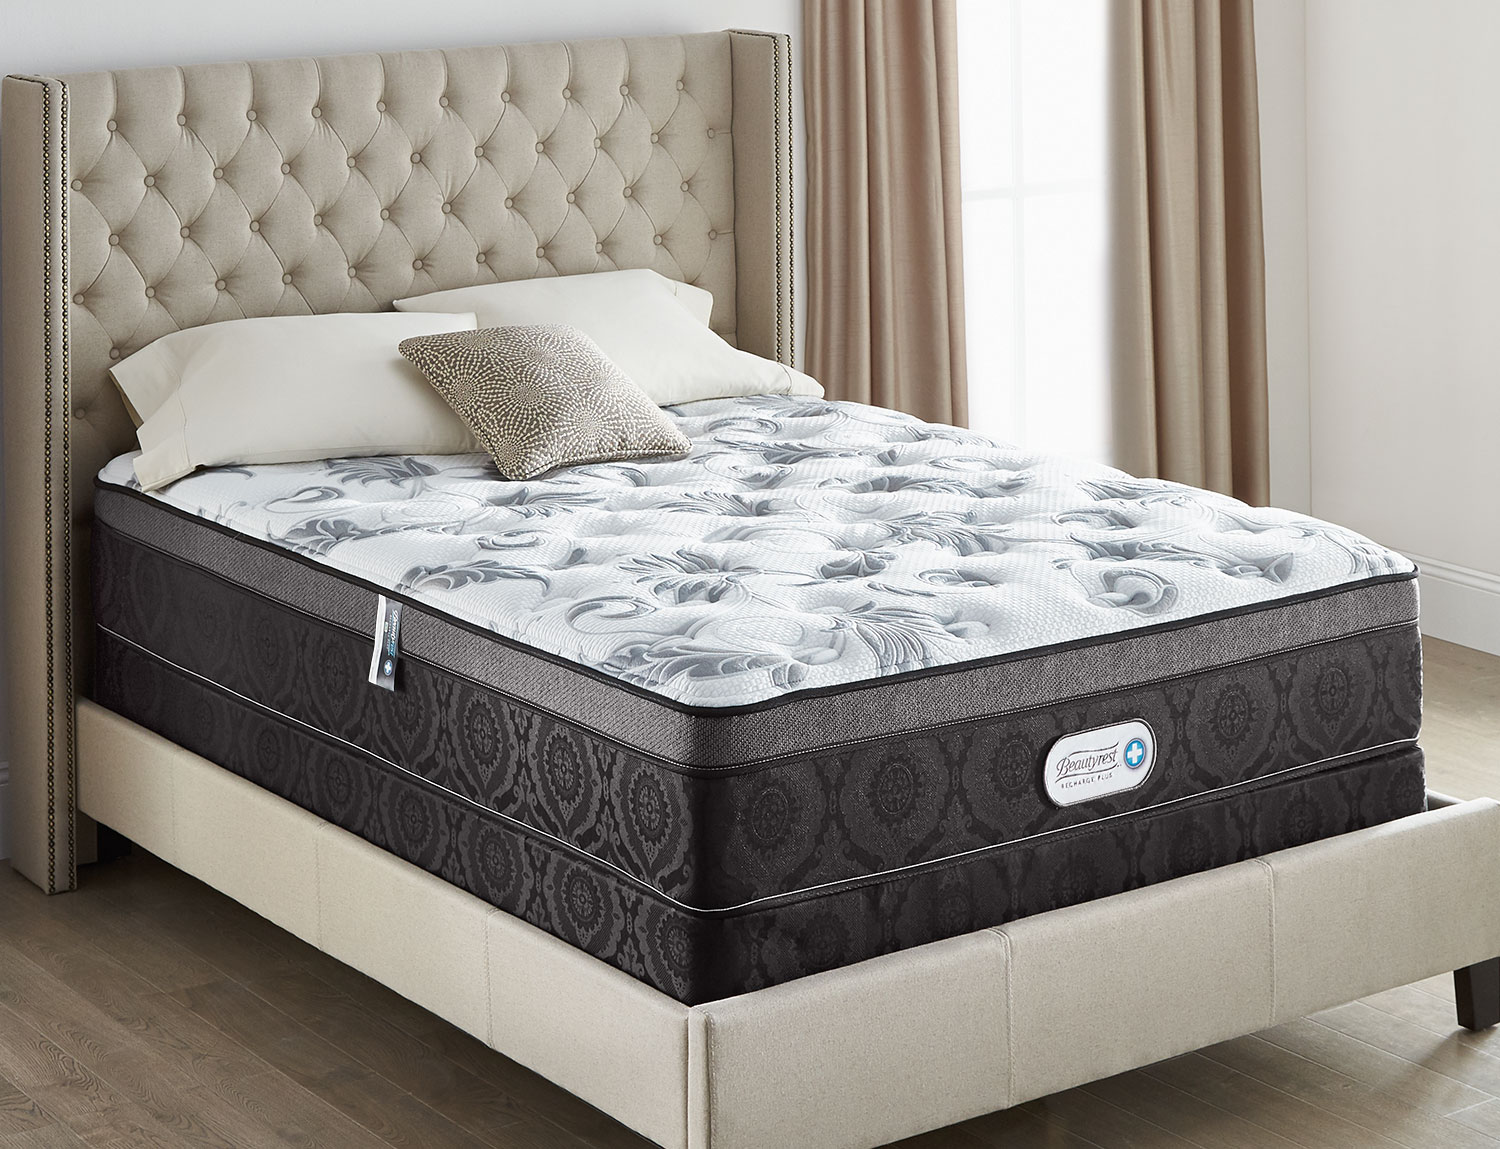 Mattresses and Bedding - Beautyrest® Recharge Plus Allure Ultra Euro-Top Low-Profile Split Queen Mattress Set